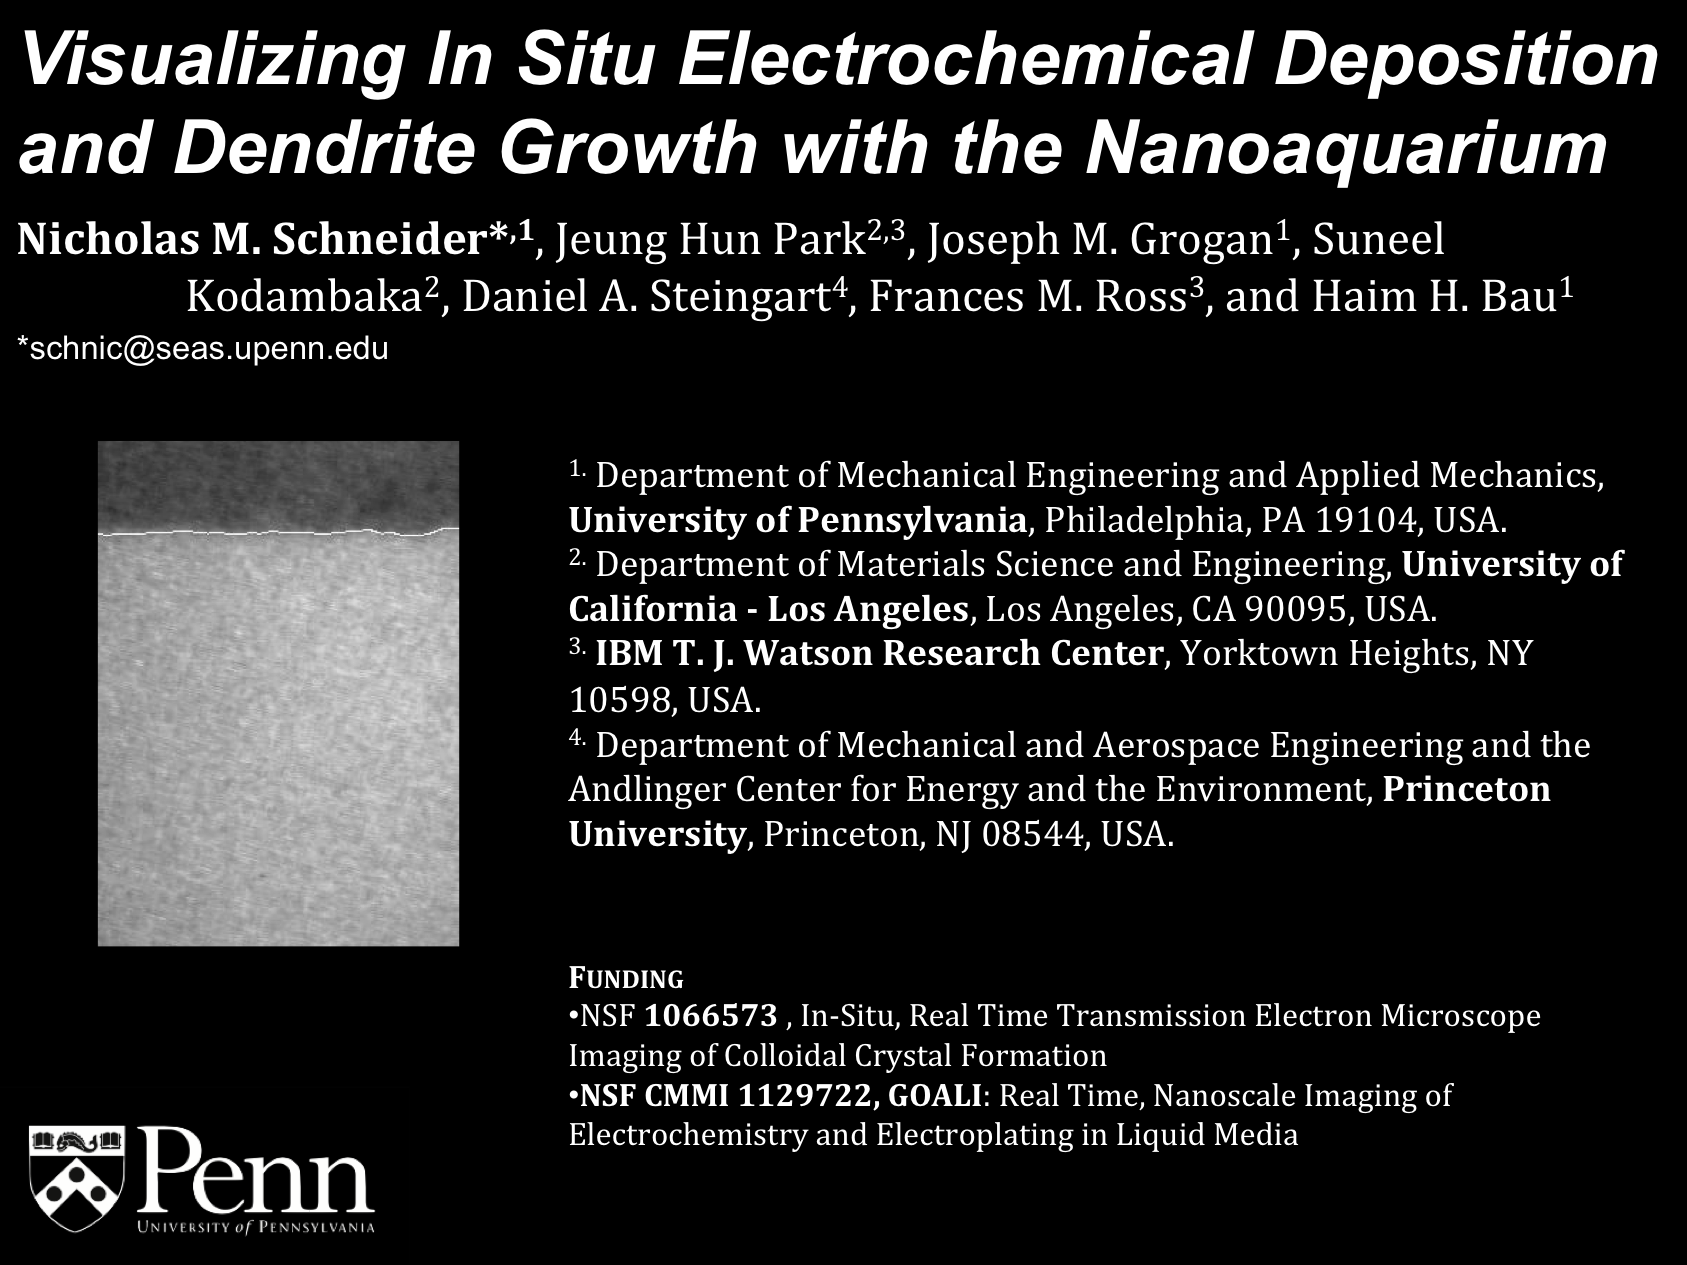 MRS Fall 2013 - Visualizing In Situ Electrochemical Deposition and Dendrite Growth with the Nanoaquarium